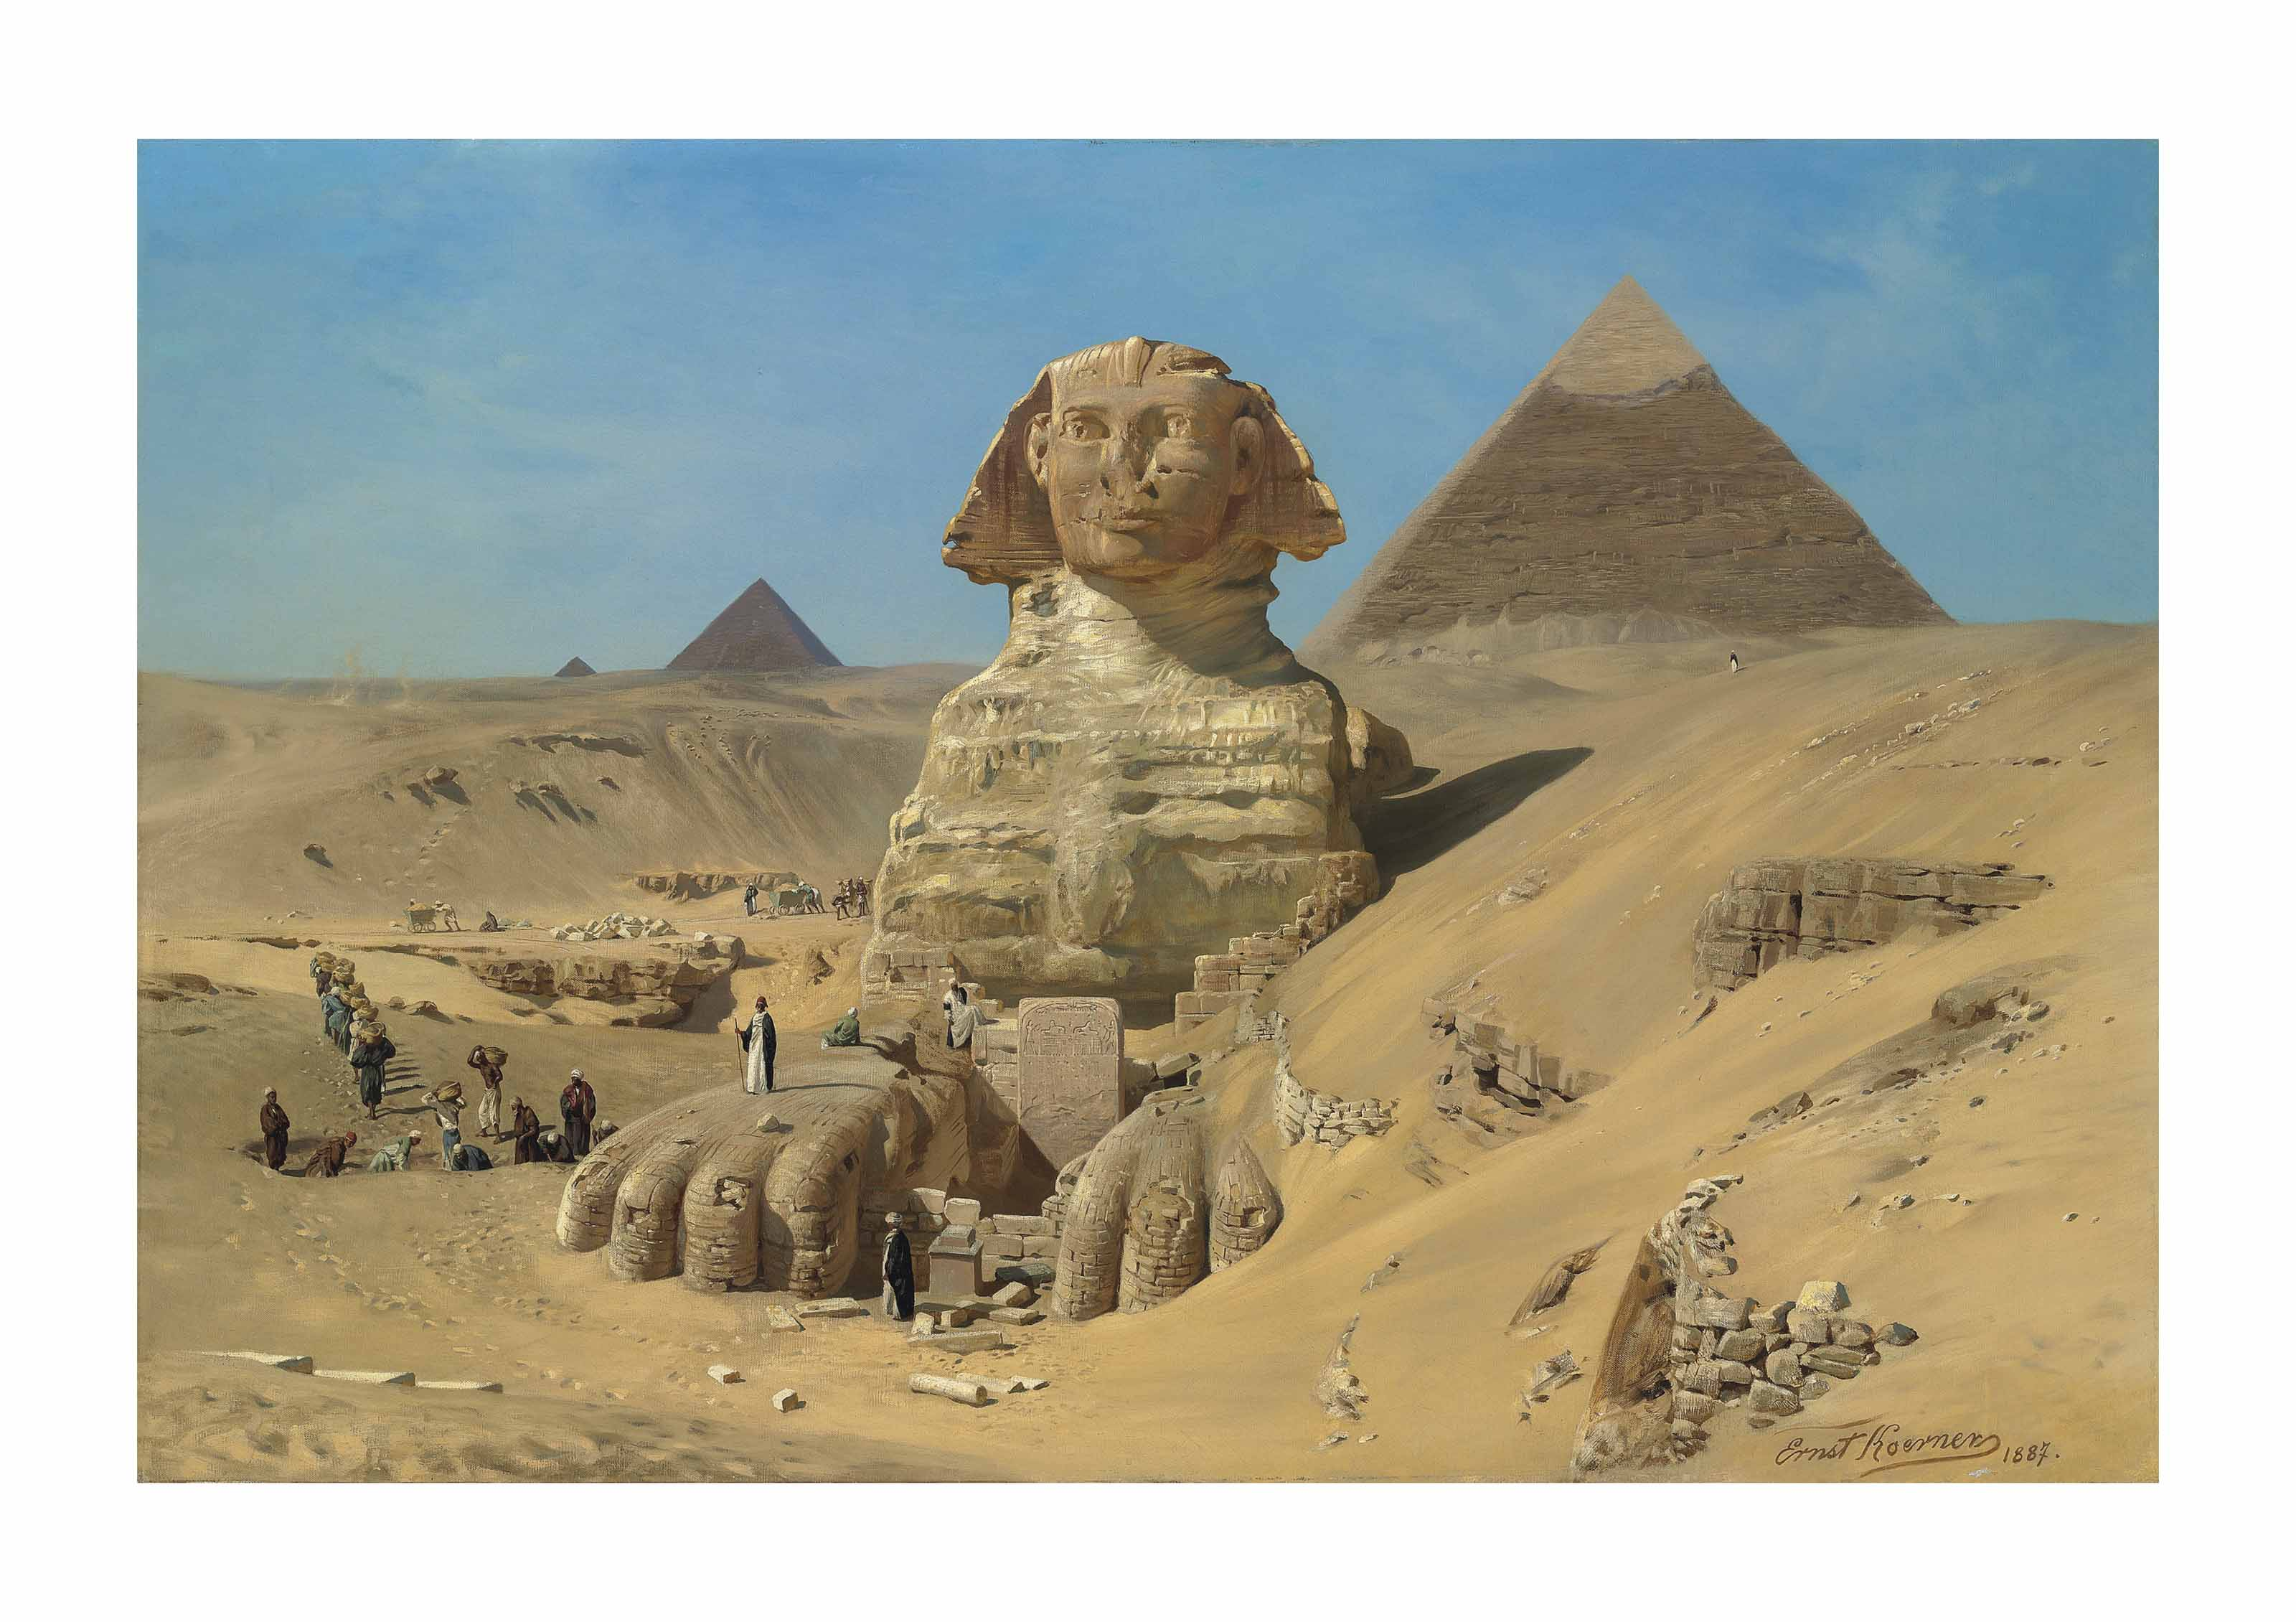 The excavation of the Sphinx